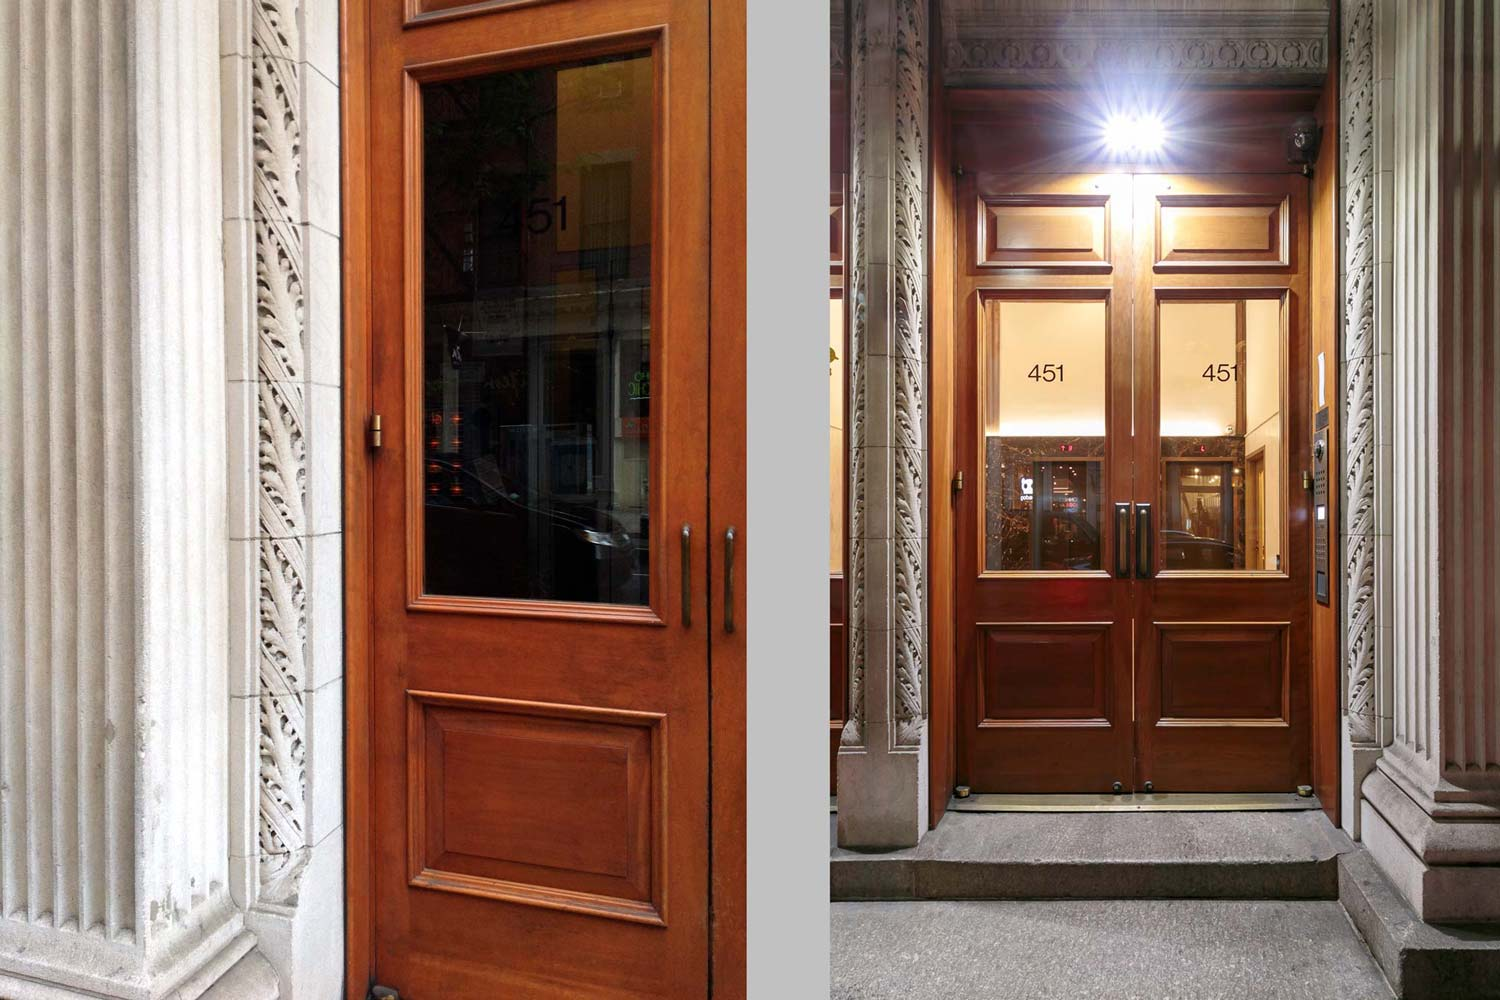 Entry to the historic lobby on Broome Street which was restored by OCV Architects